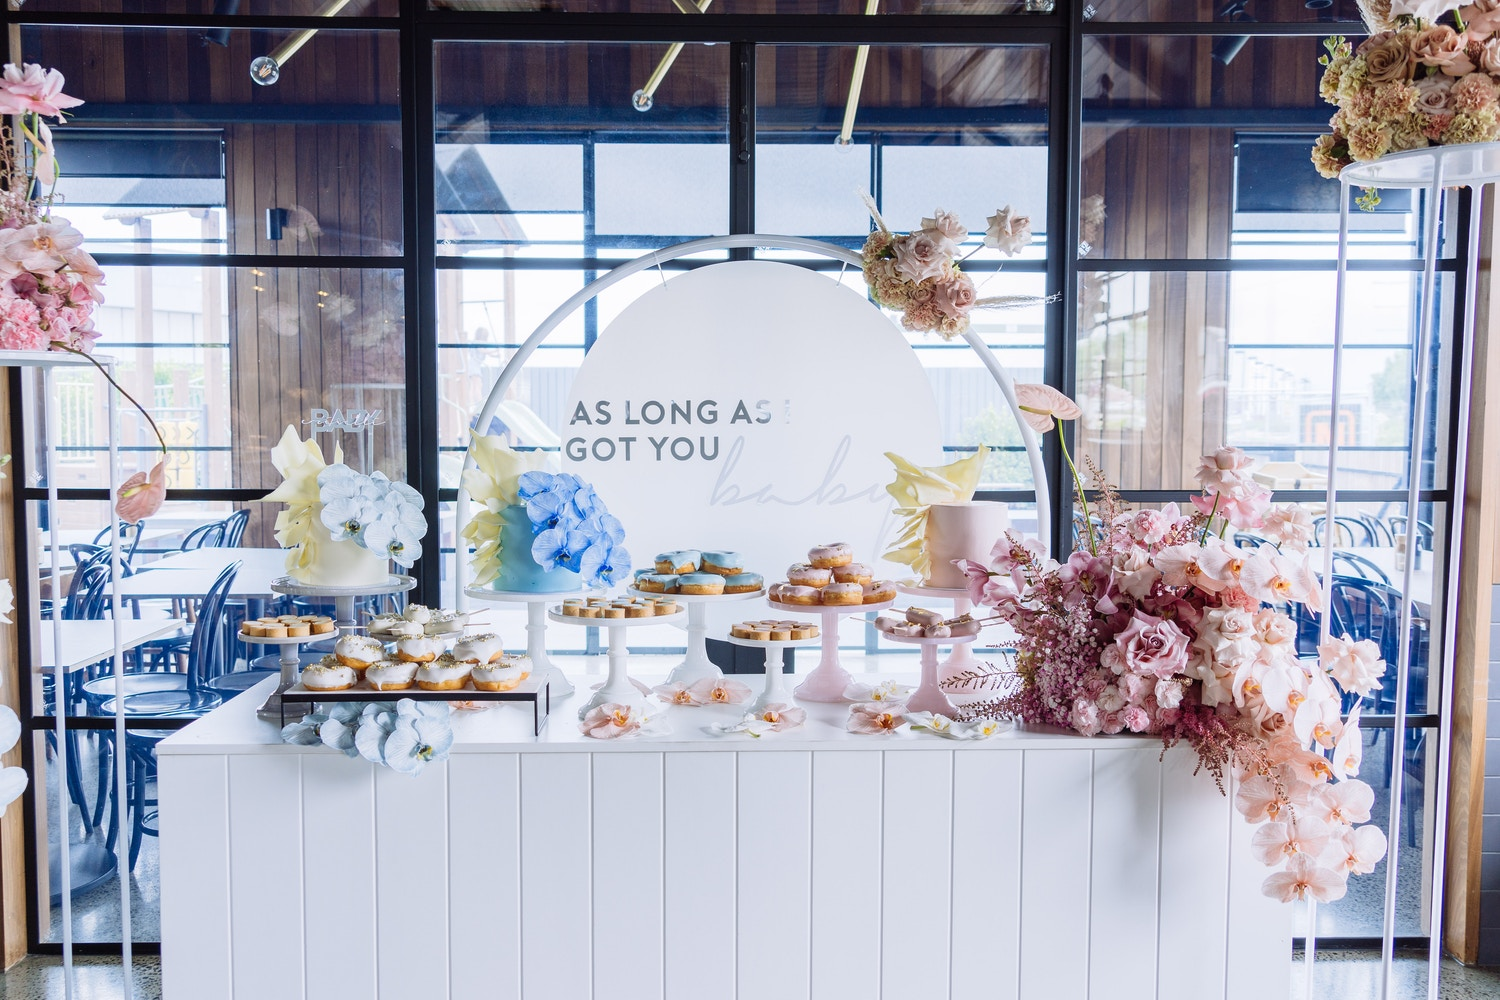 BABY CRIVELLI: A MUTED BABY SHOWER